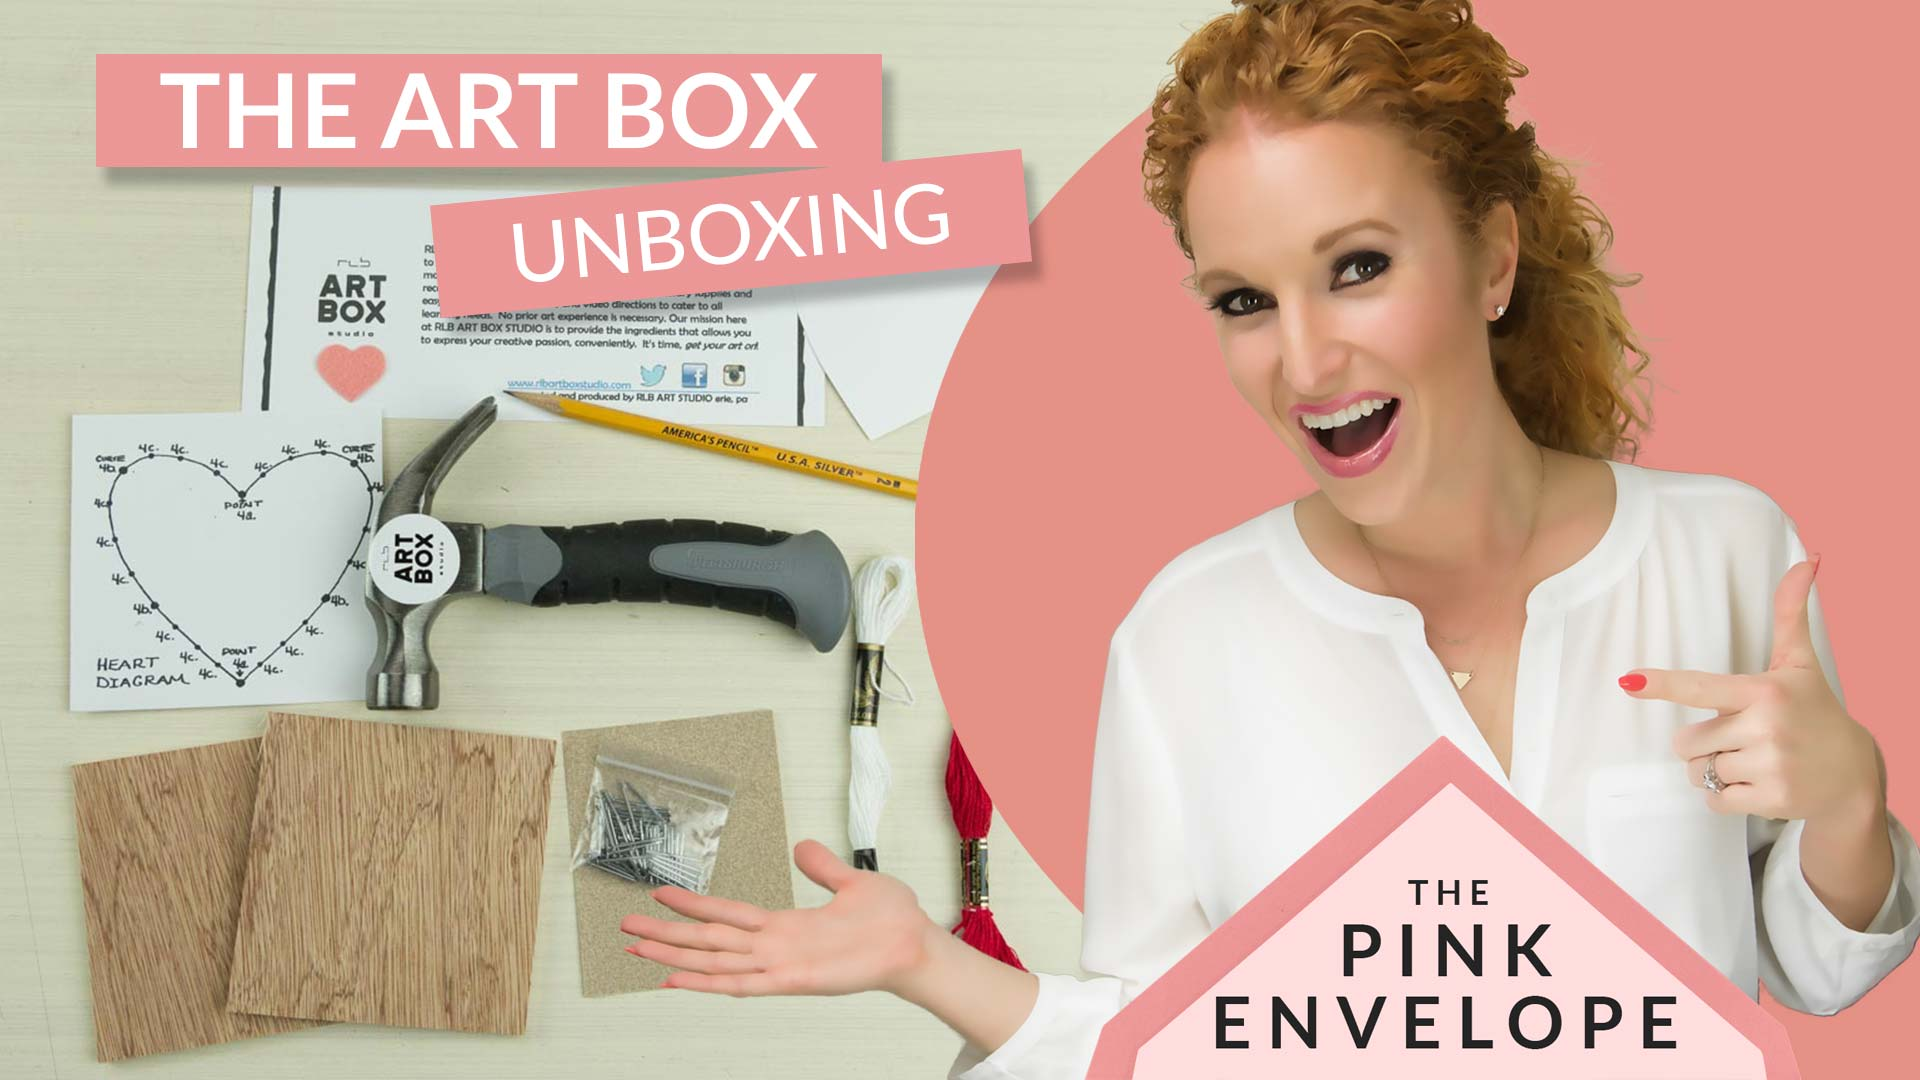 Arts & Crafts Subscription Box – RLB Art Box Studio Review